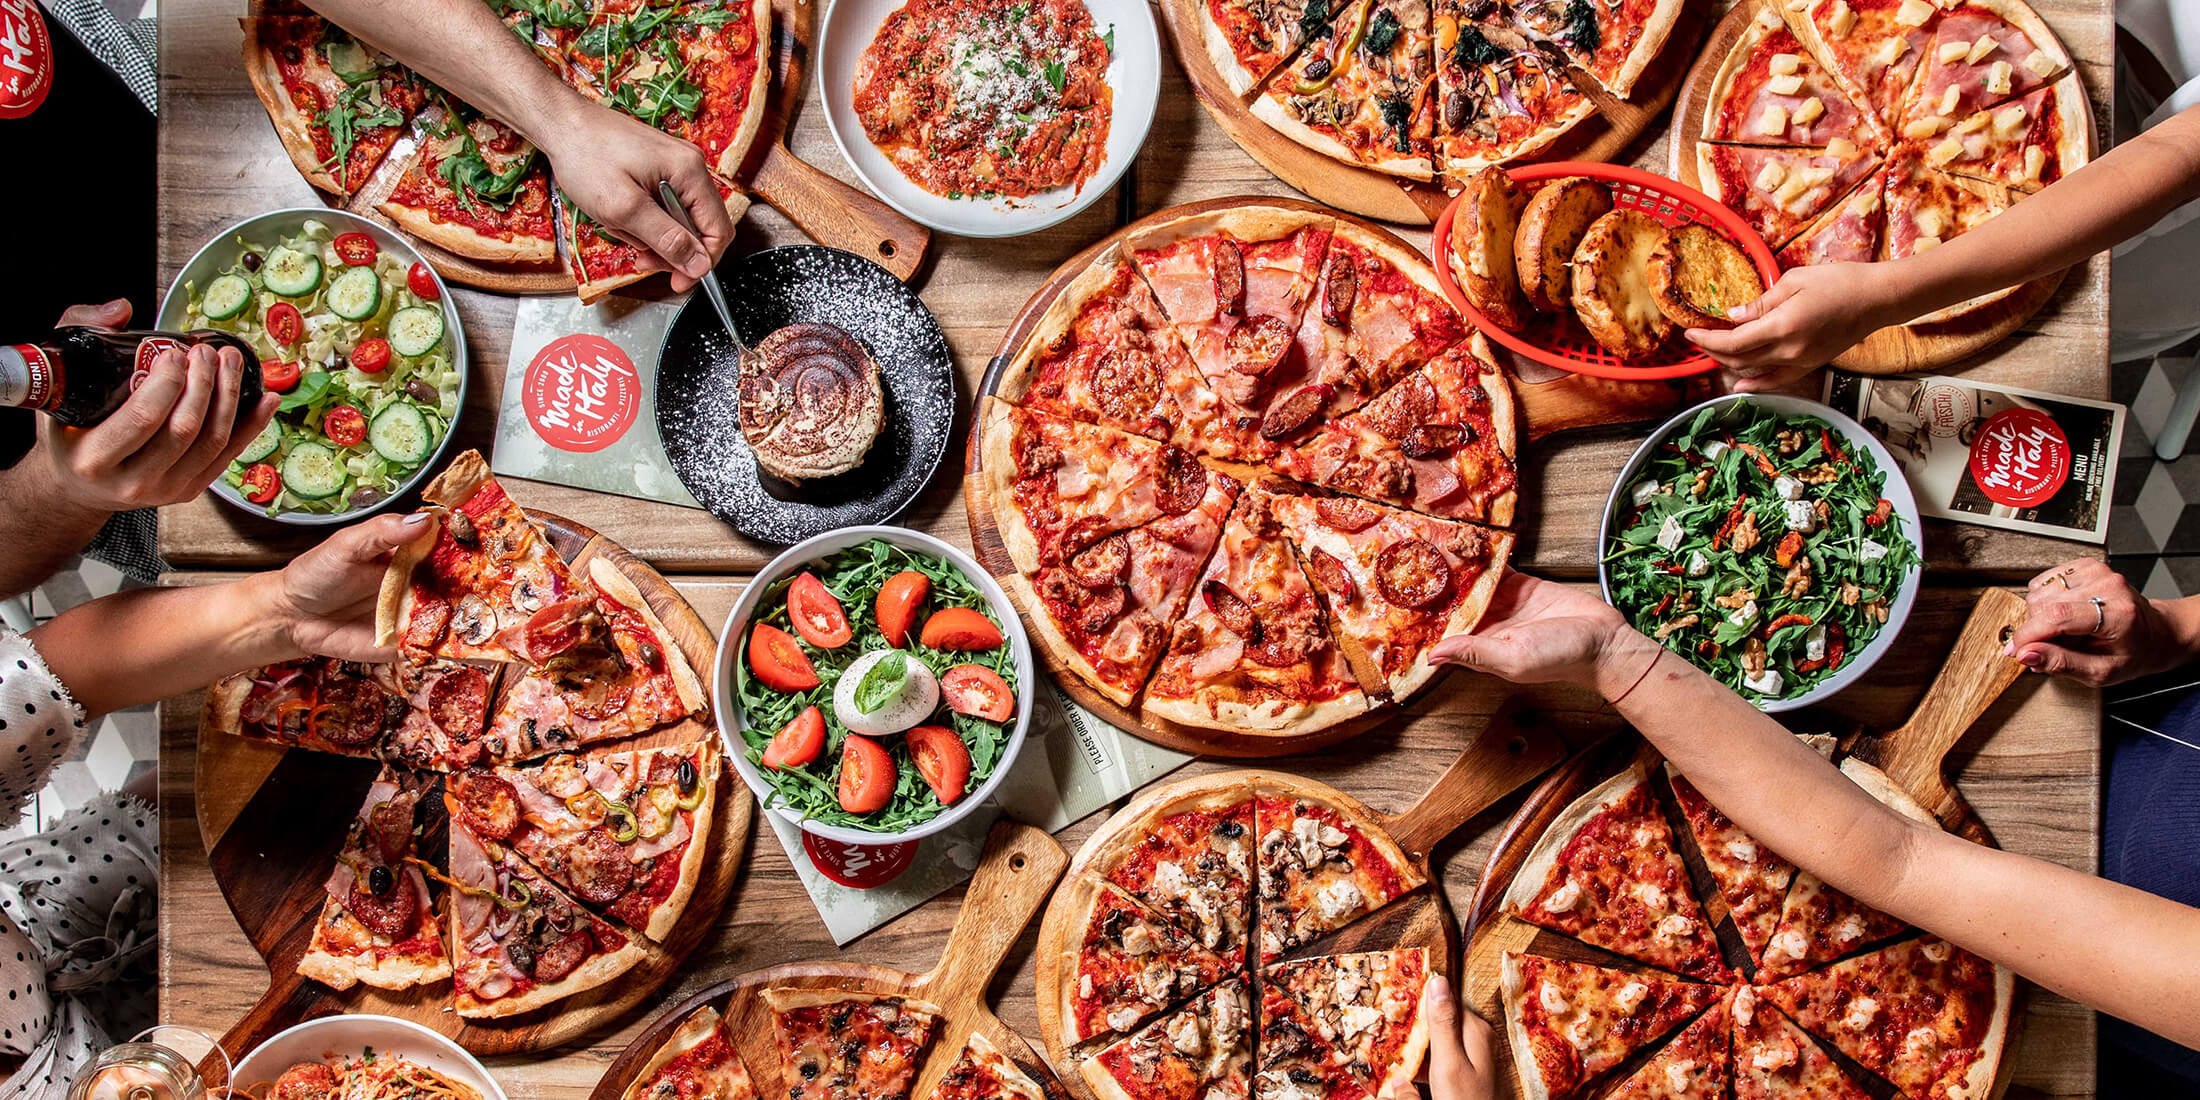 vaucluse-delivery-map-best-pizza-delivery-vaucluse-italian-food-vaucluse